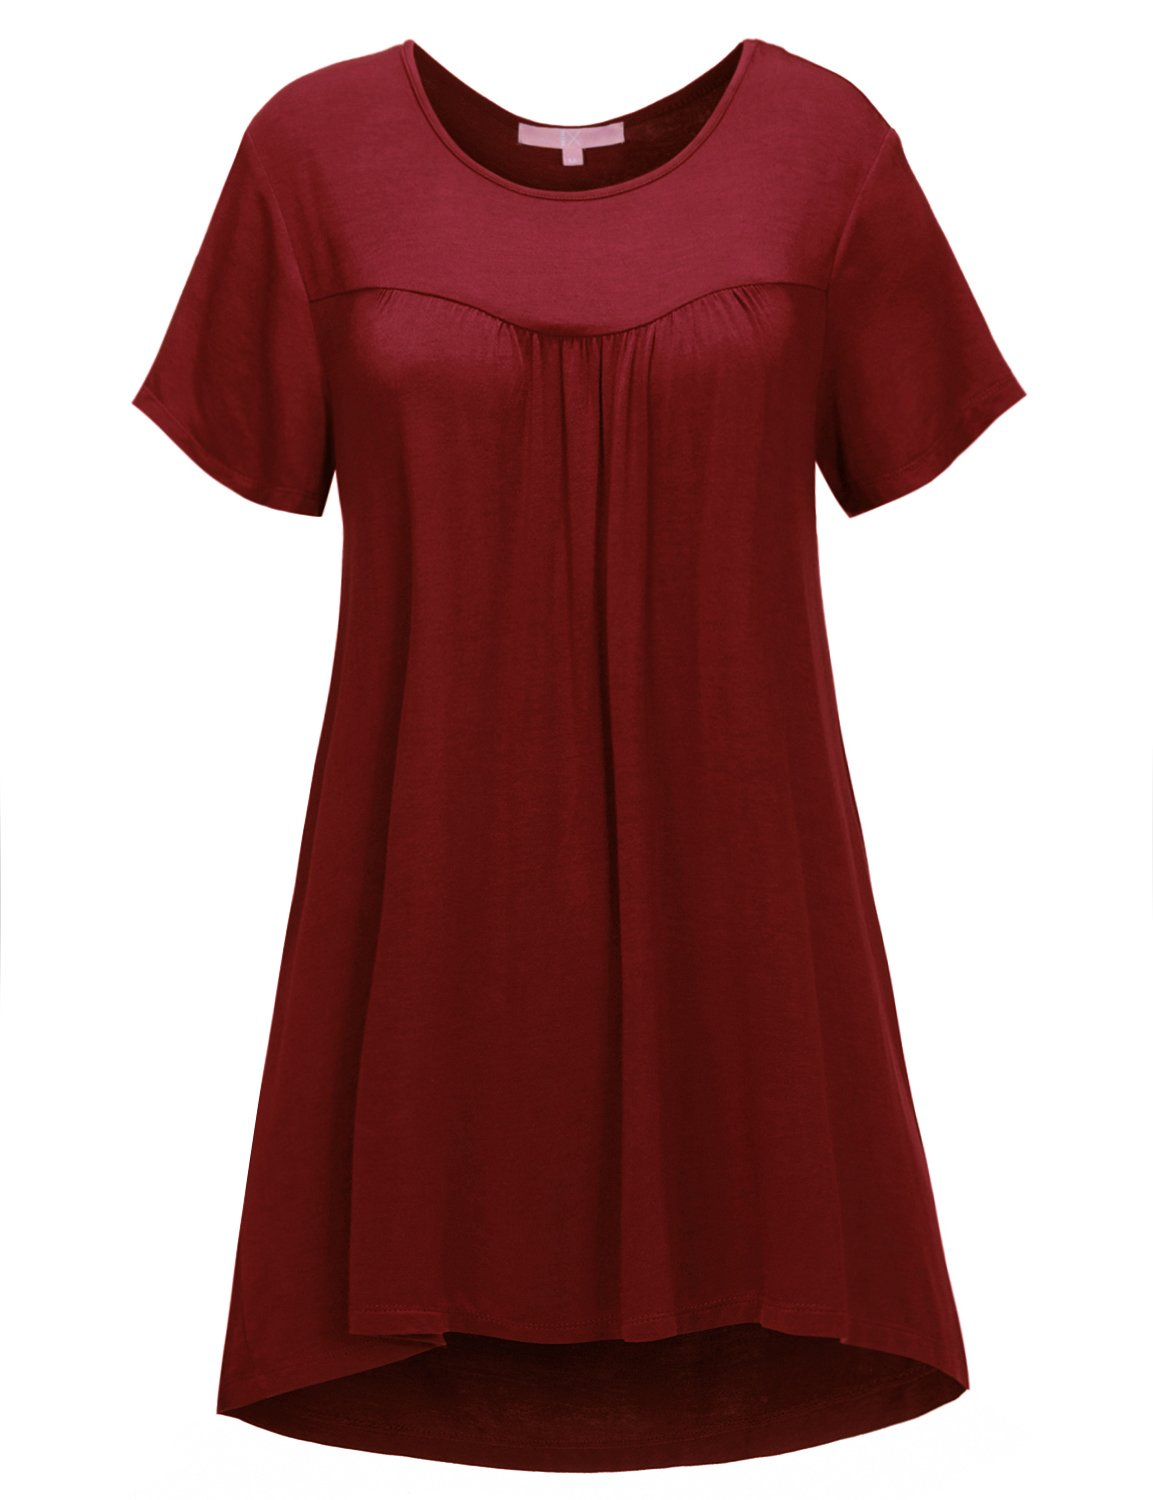 Regna X Women's Short Sleeve Round Neck Maternity Loose fit Tunic Shirt Wine 3XL